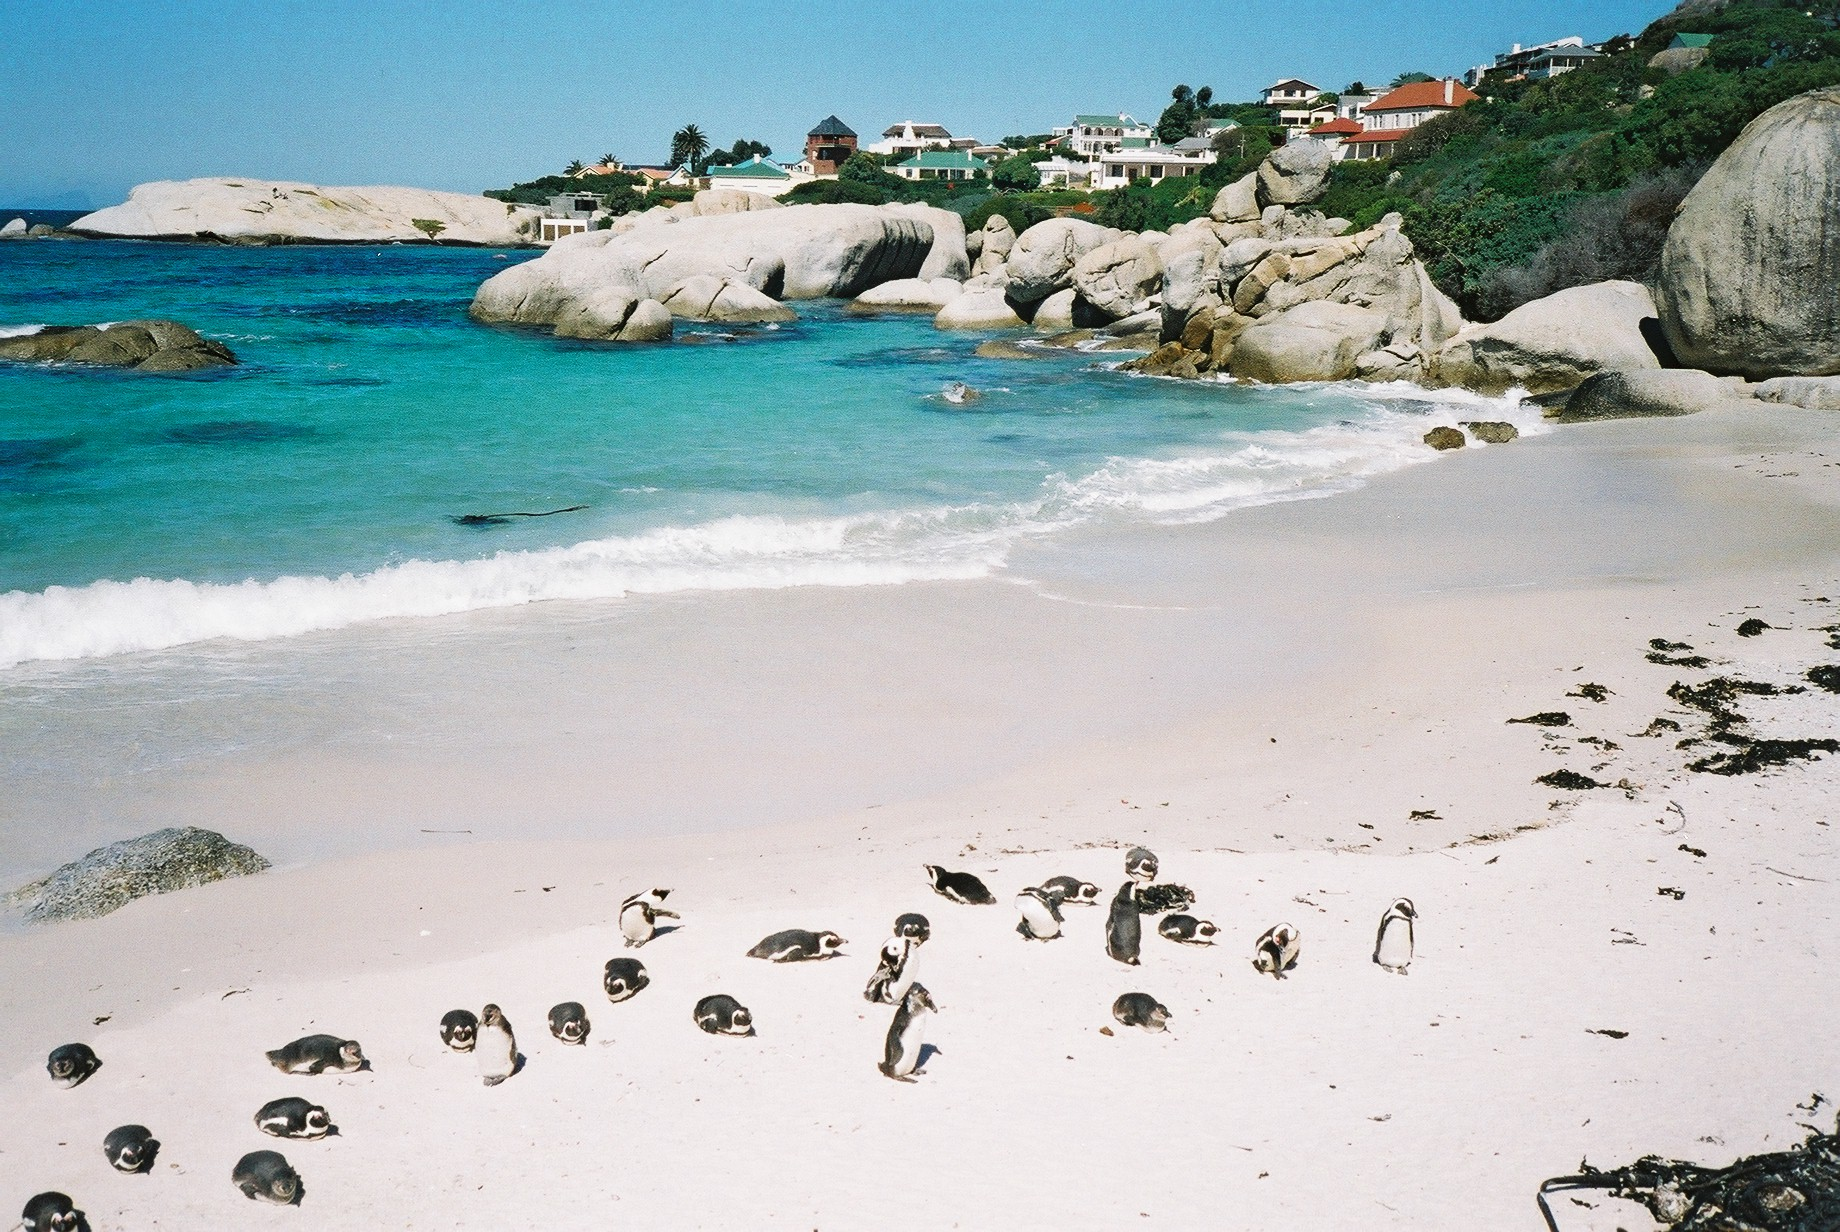 penguins-at-Boulders-Beach-Western-Cape-South-Africa-1-WL1